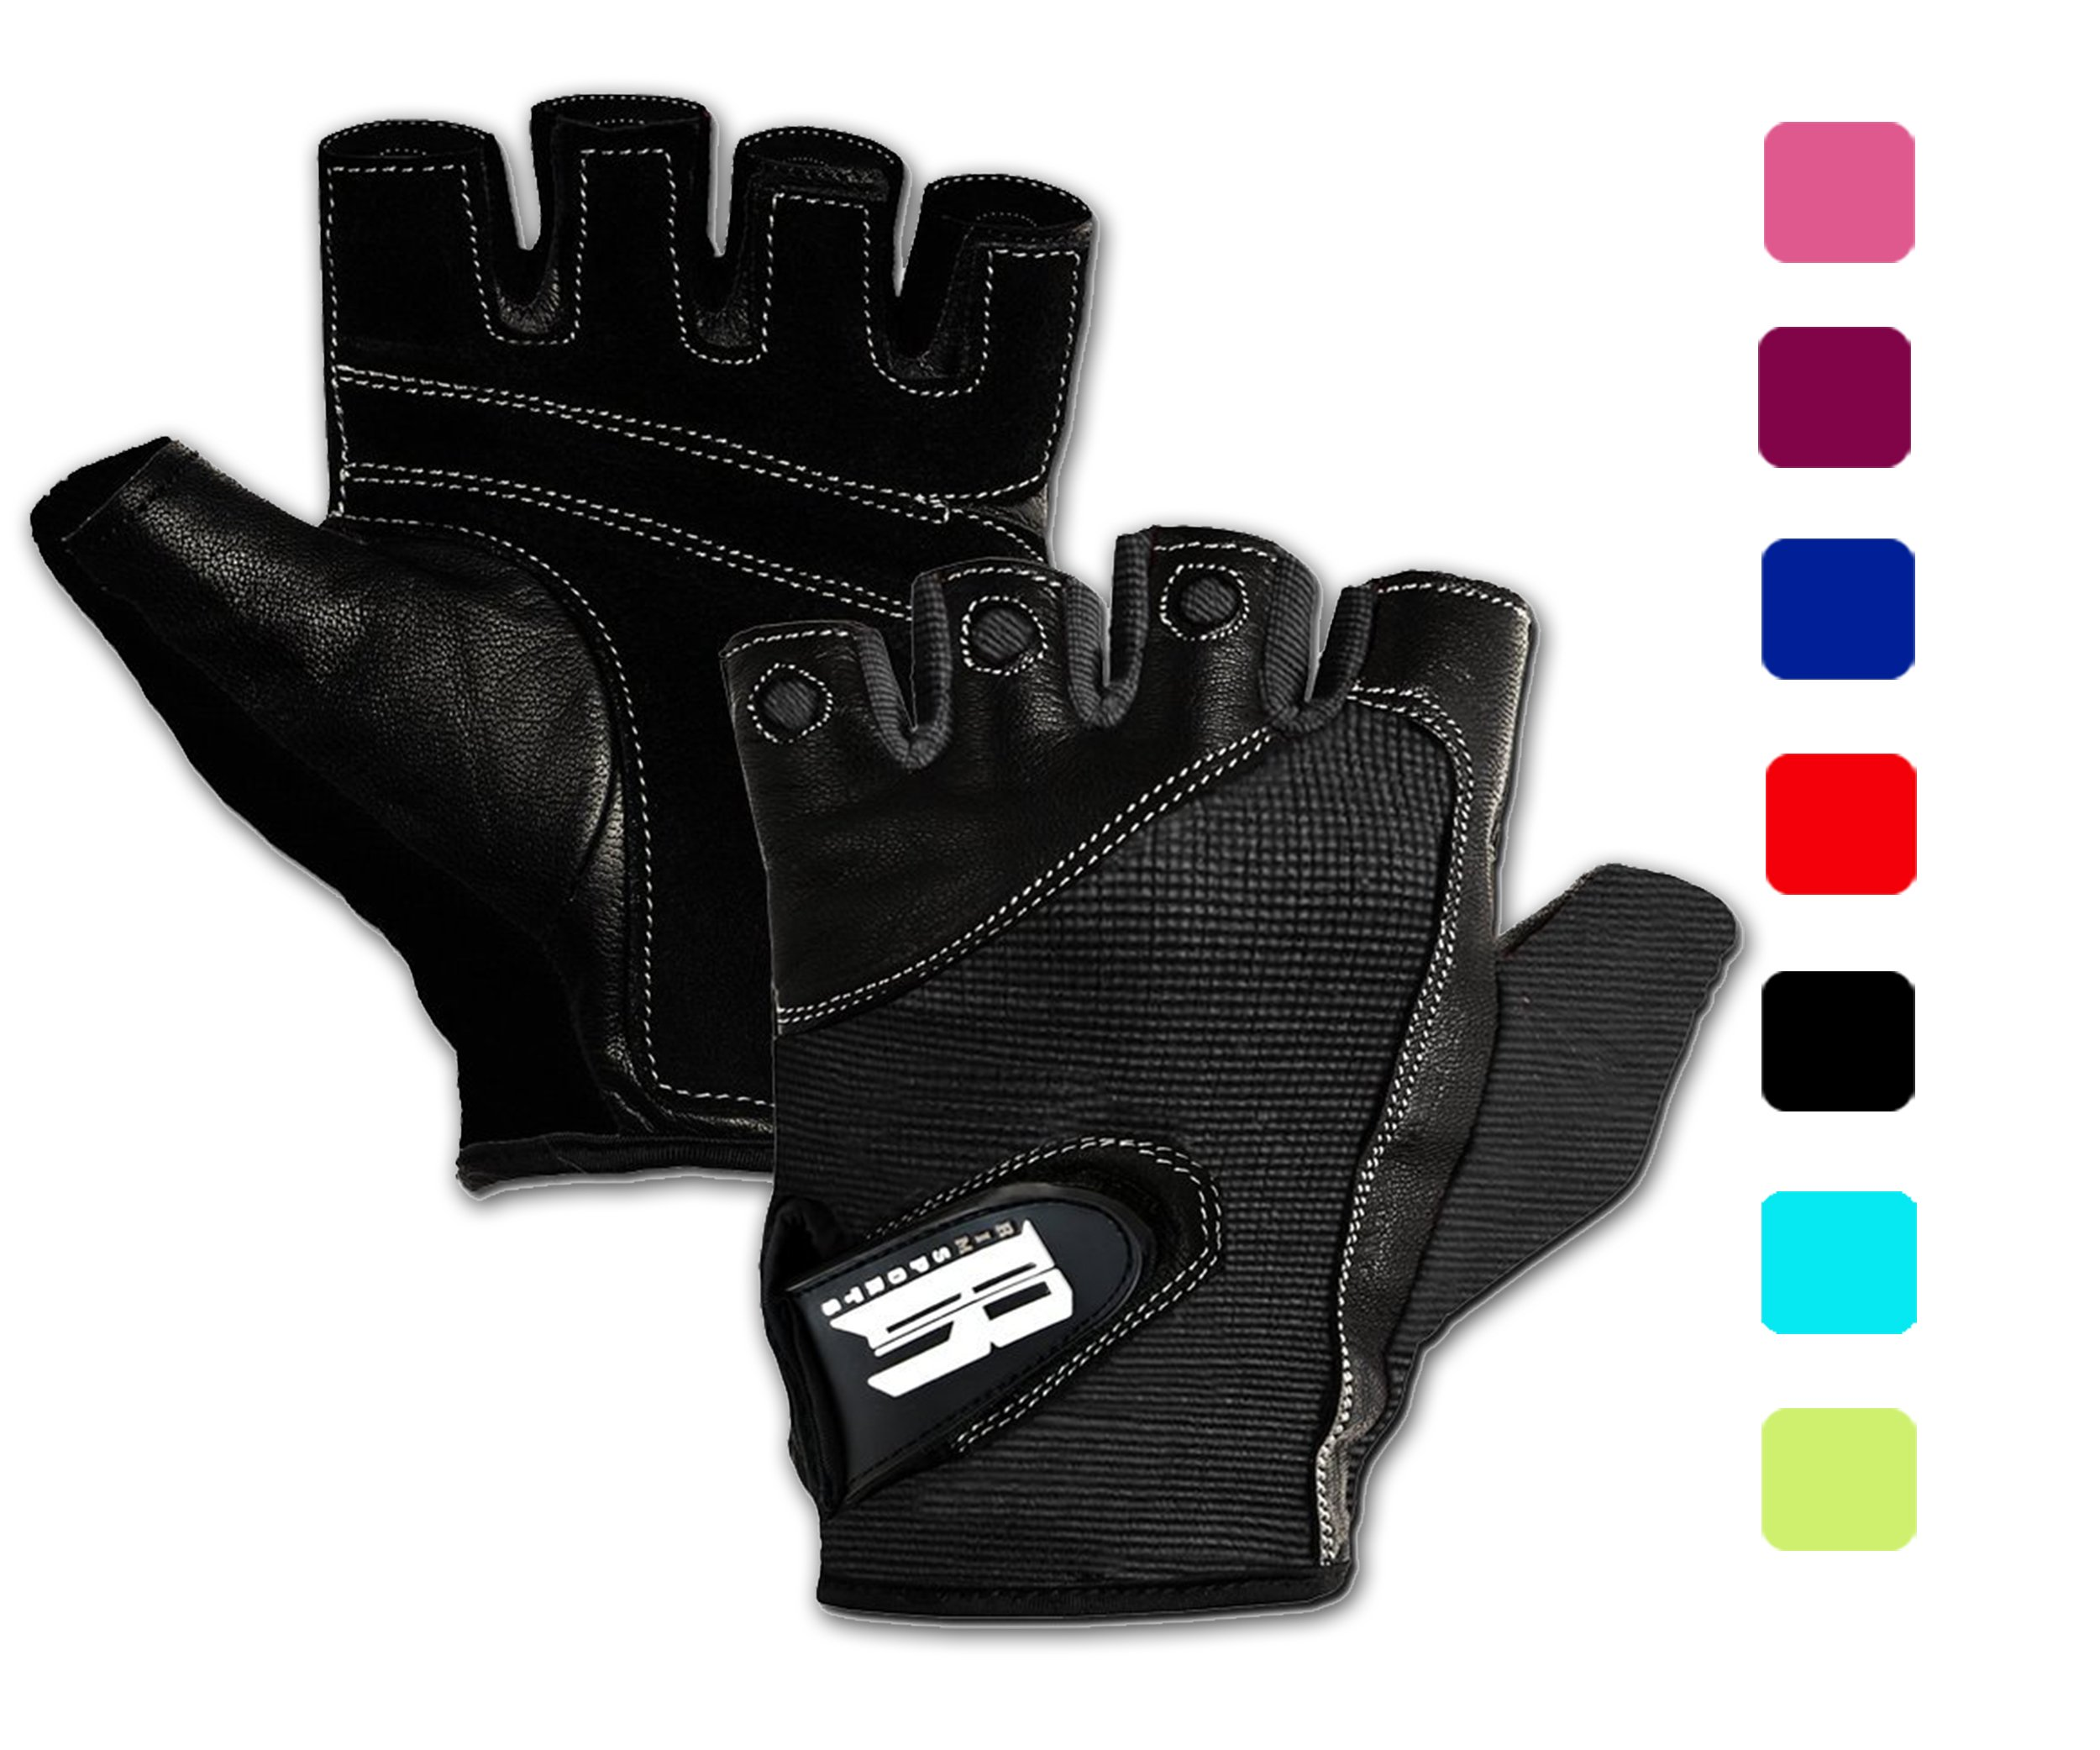 RIMSports Weight Lifting Gloves for Gym -Gym Gloves w/Washable - Ideal Rowing Gloves,Workout Gloves - Premium Gloves for Core Fitness Dumbbells & Flexibility Machine Black XS